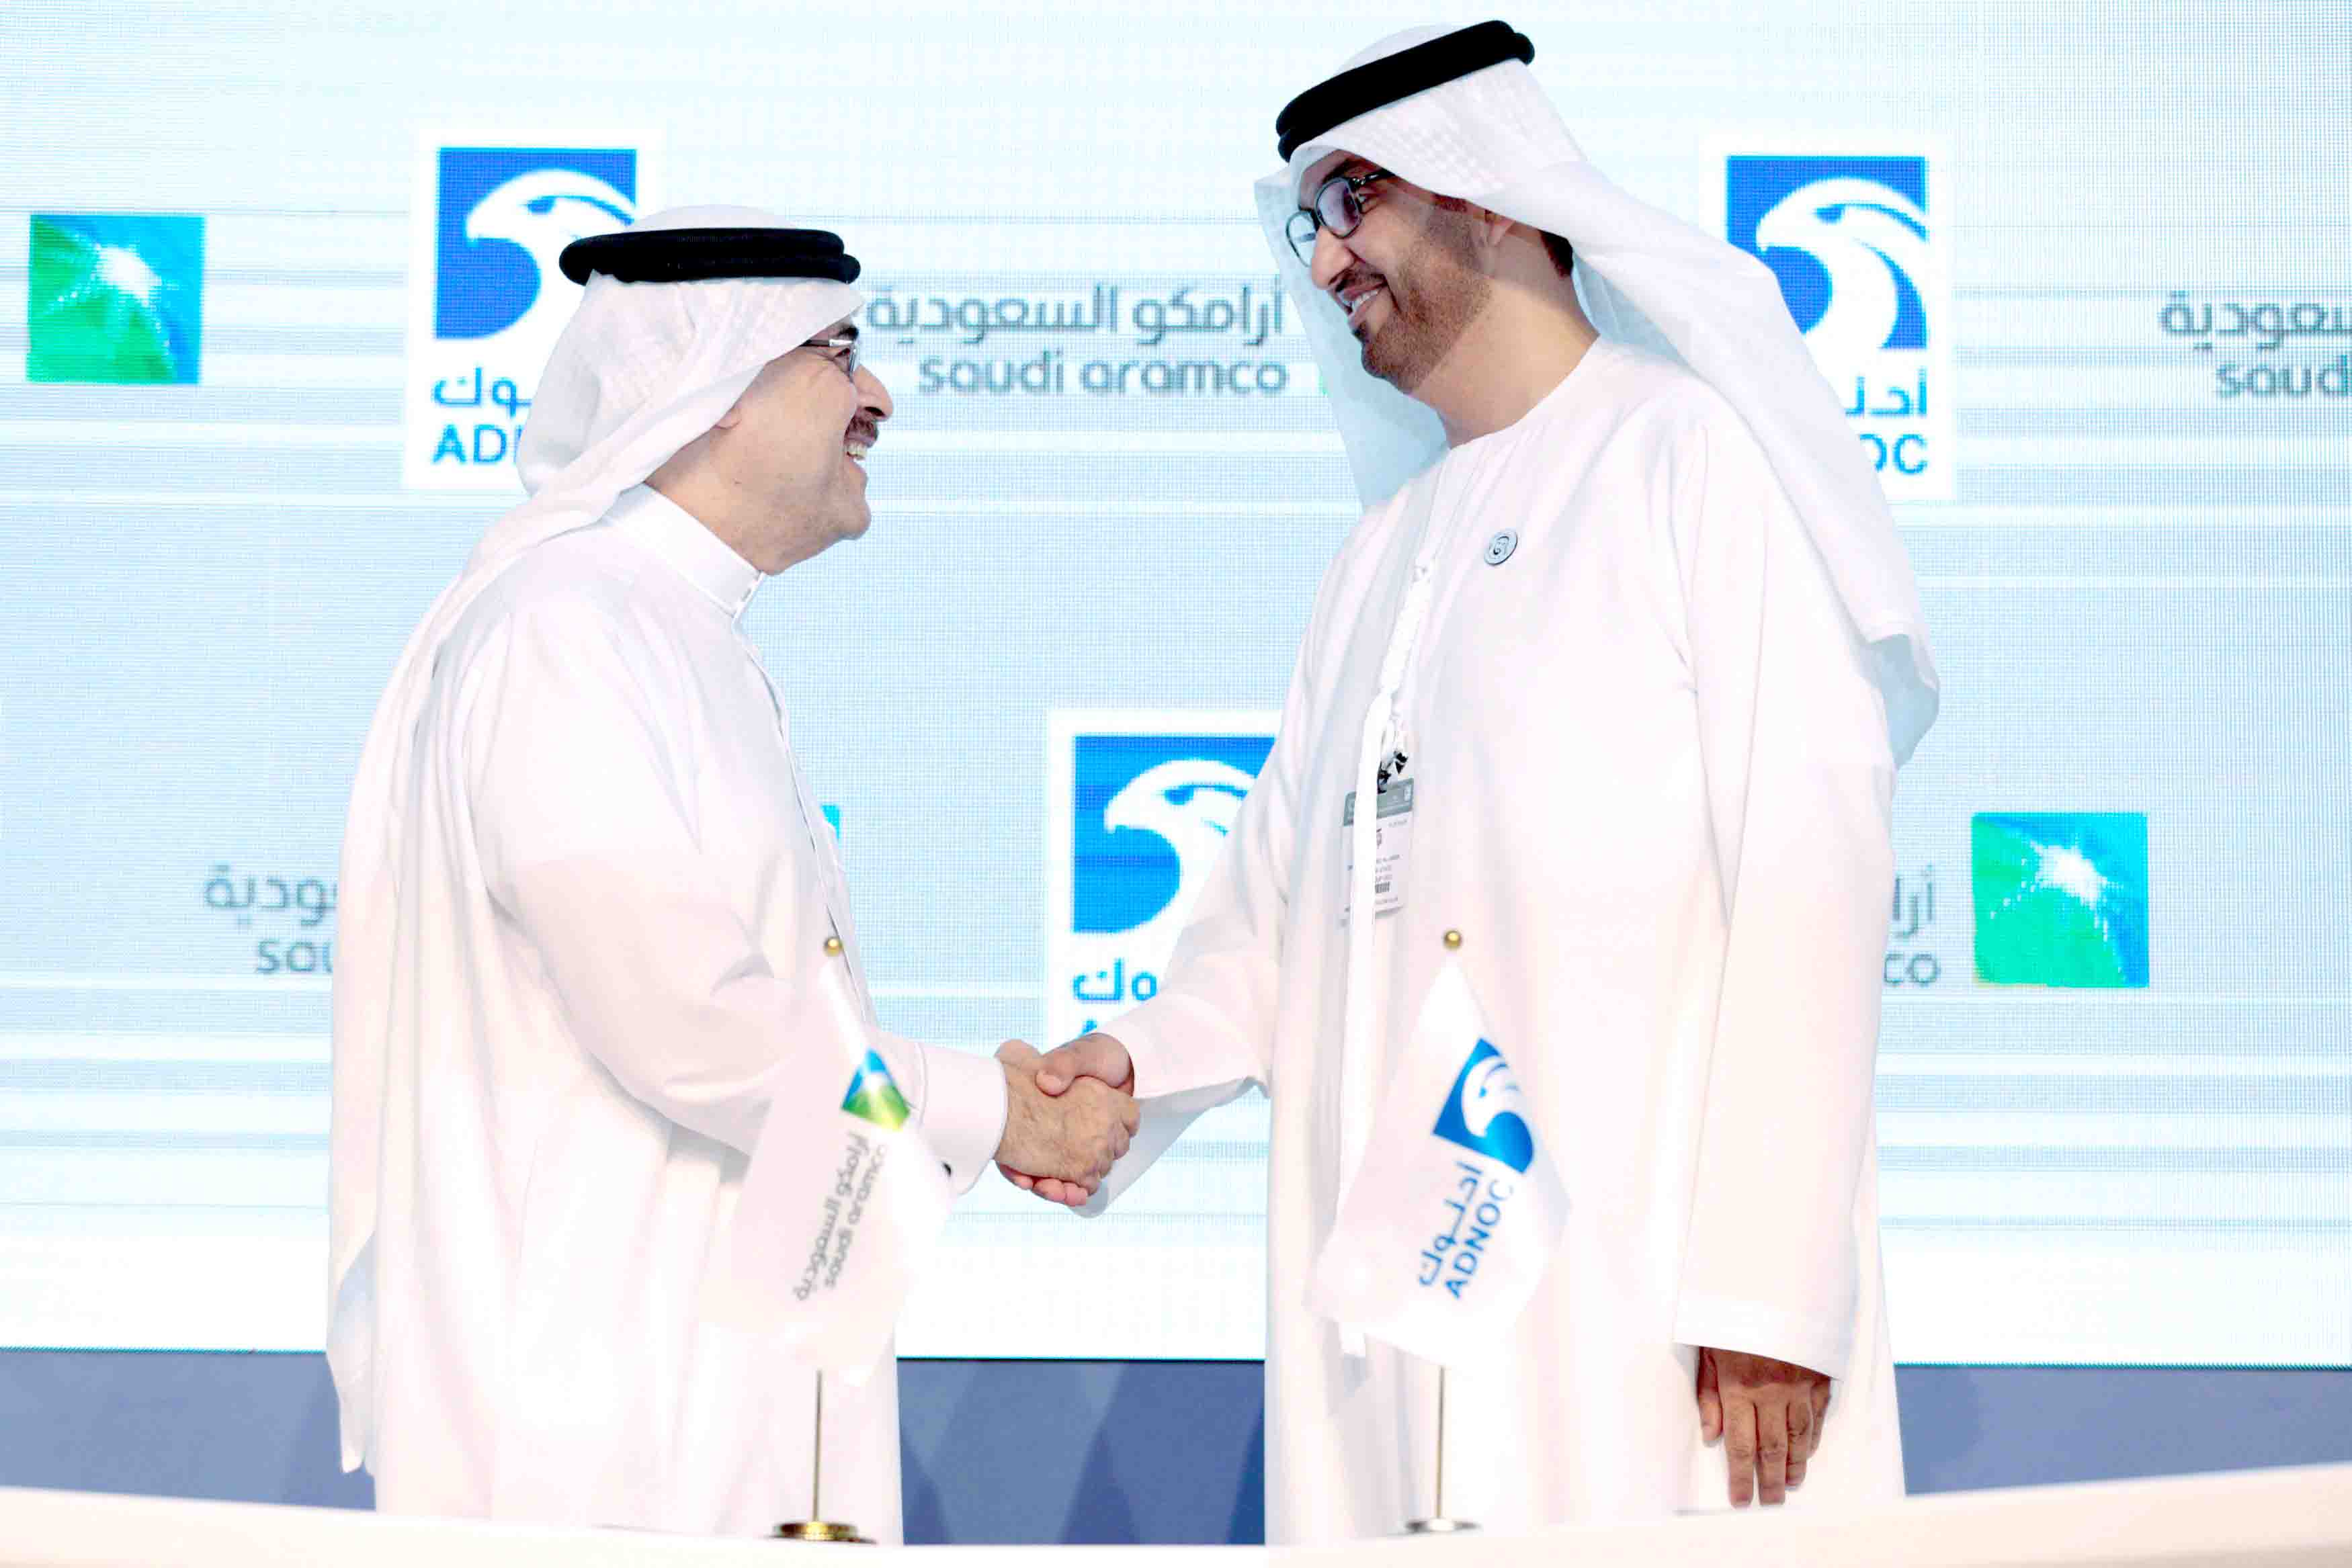 Saudi Aramco CEO Amin H. Nasser (L) shakes hands with Sultan Ahmed Al Jaber, UAE Minister of State and the Abu Dhabi National Oil Company CEO, in Abu Dhabi, United Arab Emirates, November 12, 2018. (Reuters)